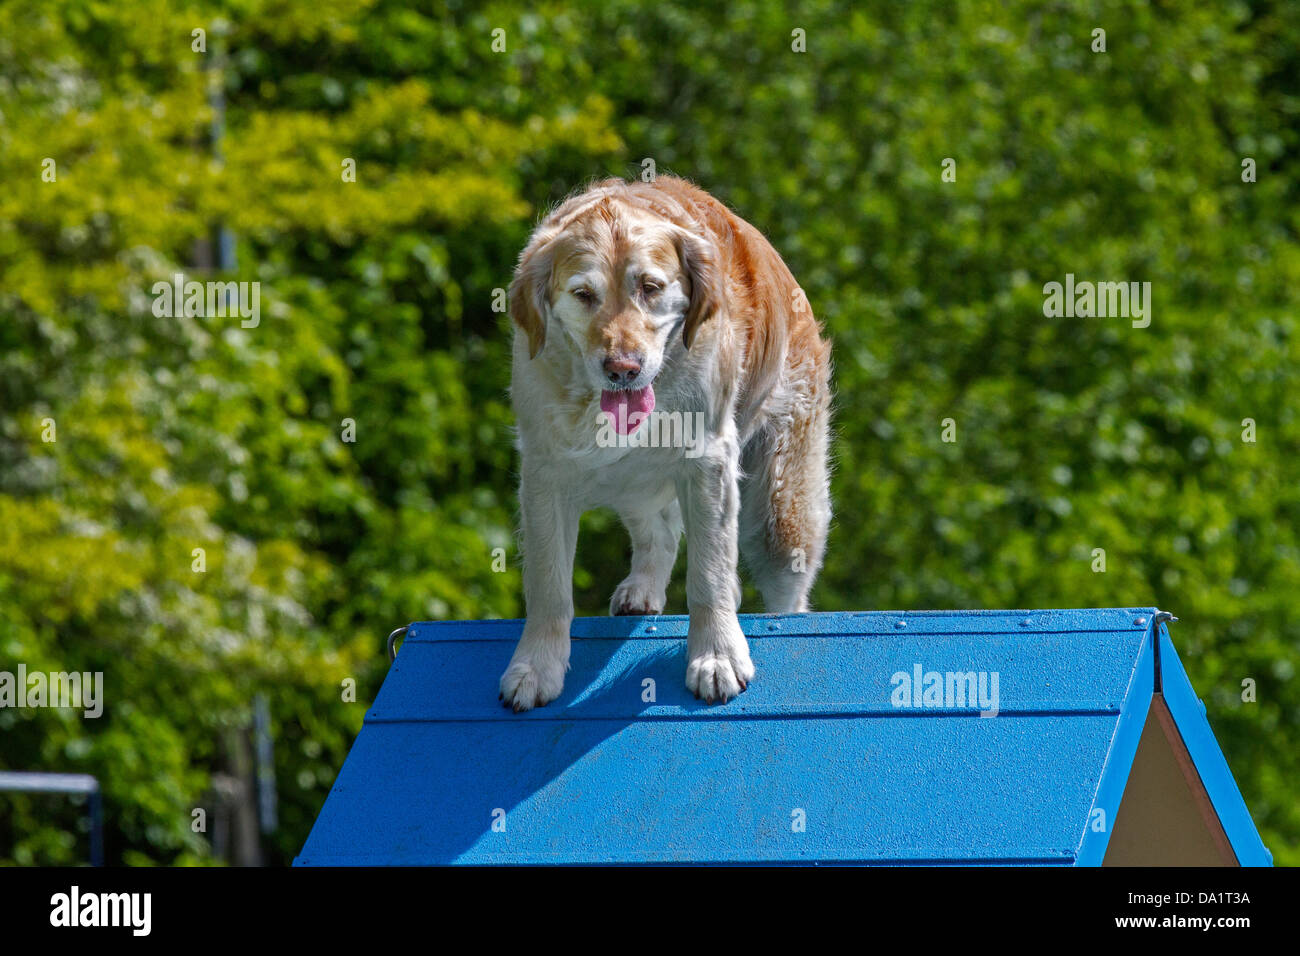 Golden retriever dog (Canis lupus familiaris) running and jumping at obstacle course in dog training school - Stock Image